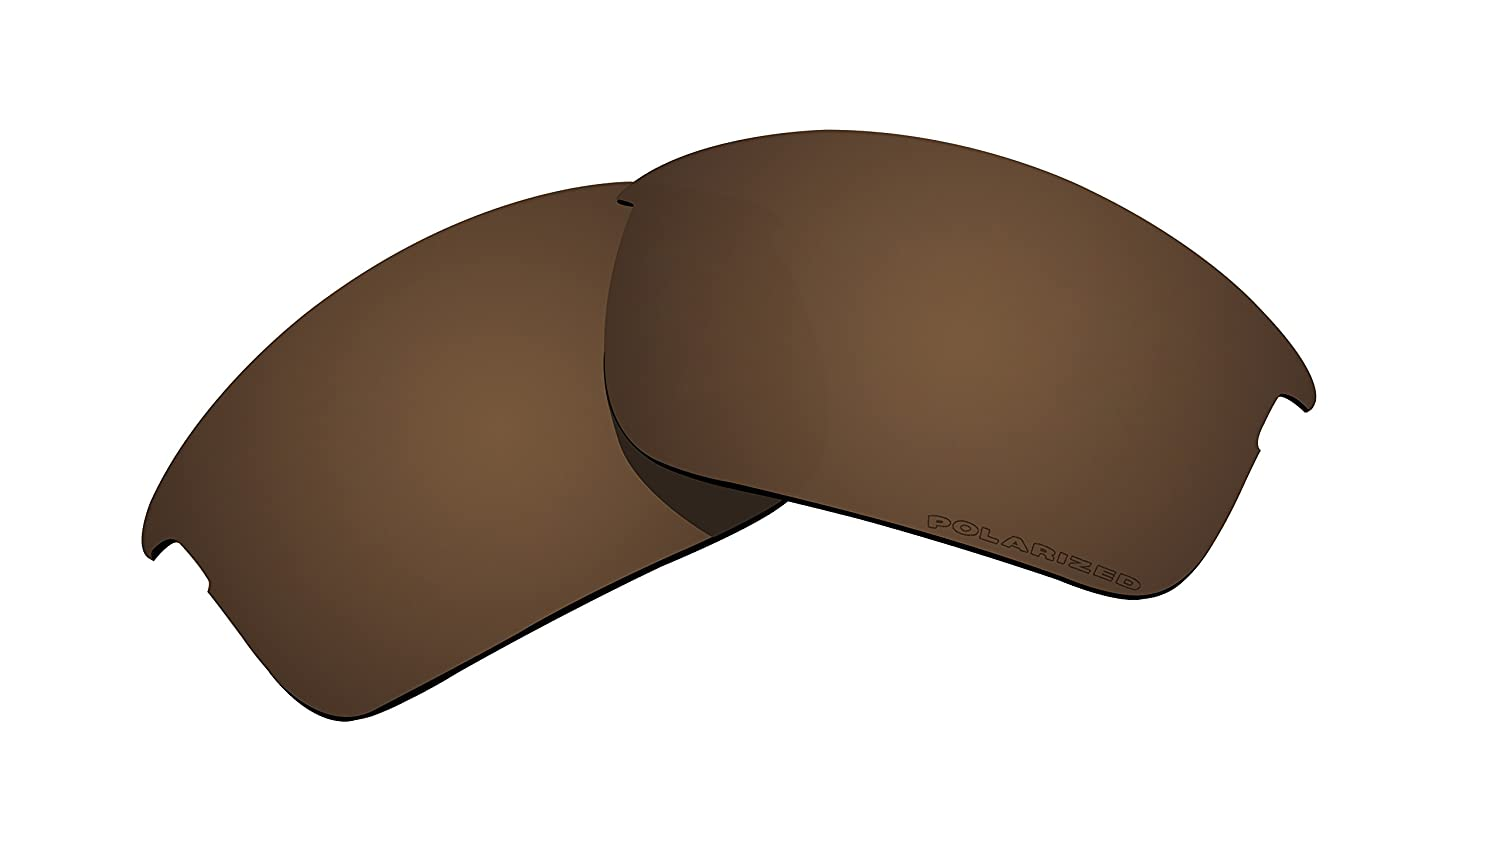 3b4cd55209 Amazon.com  Polarized Replacement Lenses for Oakley Bottle Rocket Sunglasses  - 6 Options Available (Brown)  Beauty